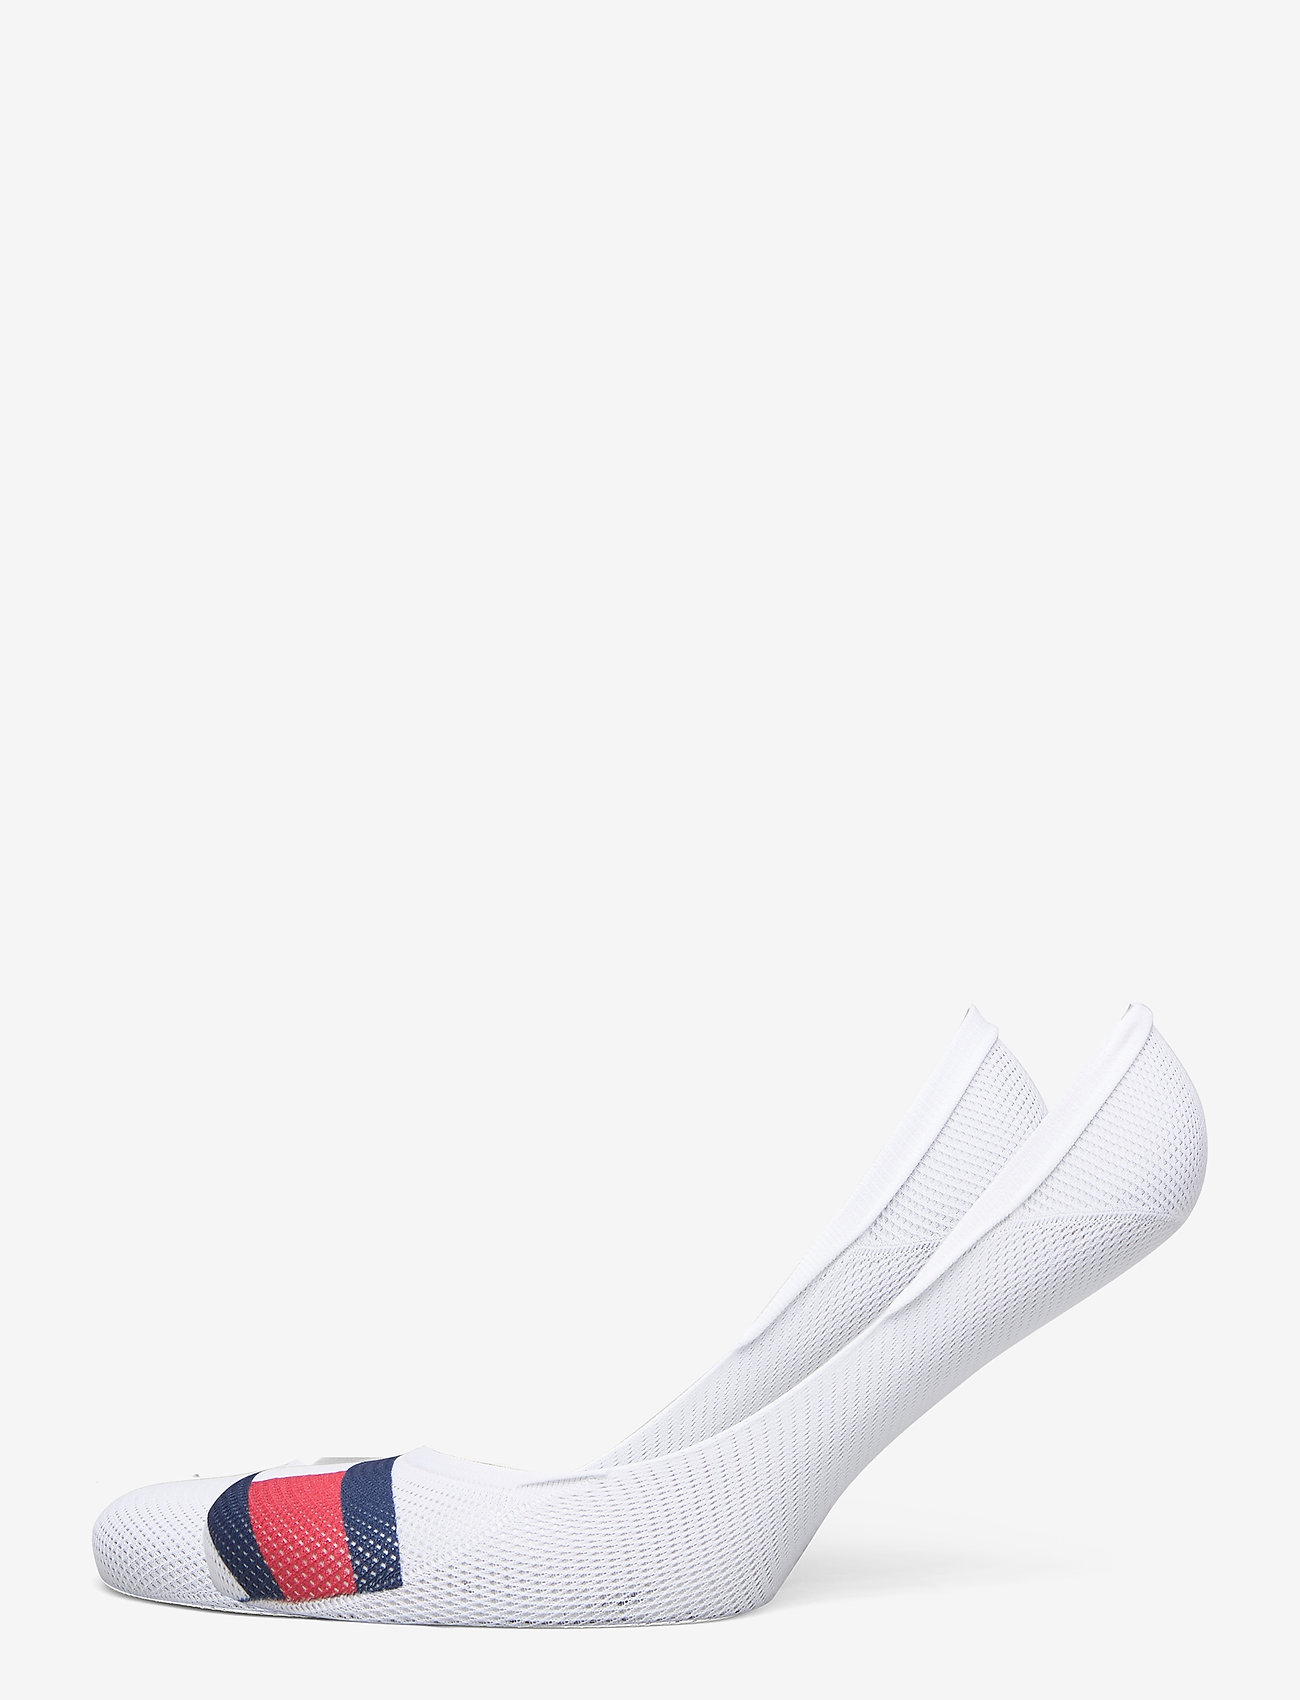 Tommy Hilfiger - TH WOMEN FOOTIE 2P MESH FLAG - footies - white - 1